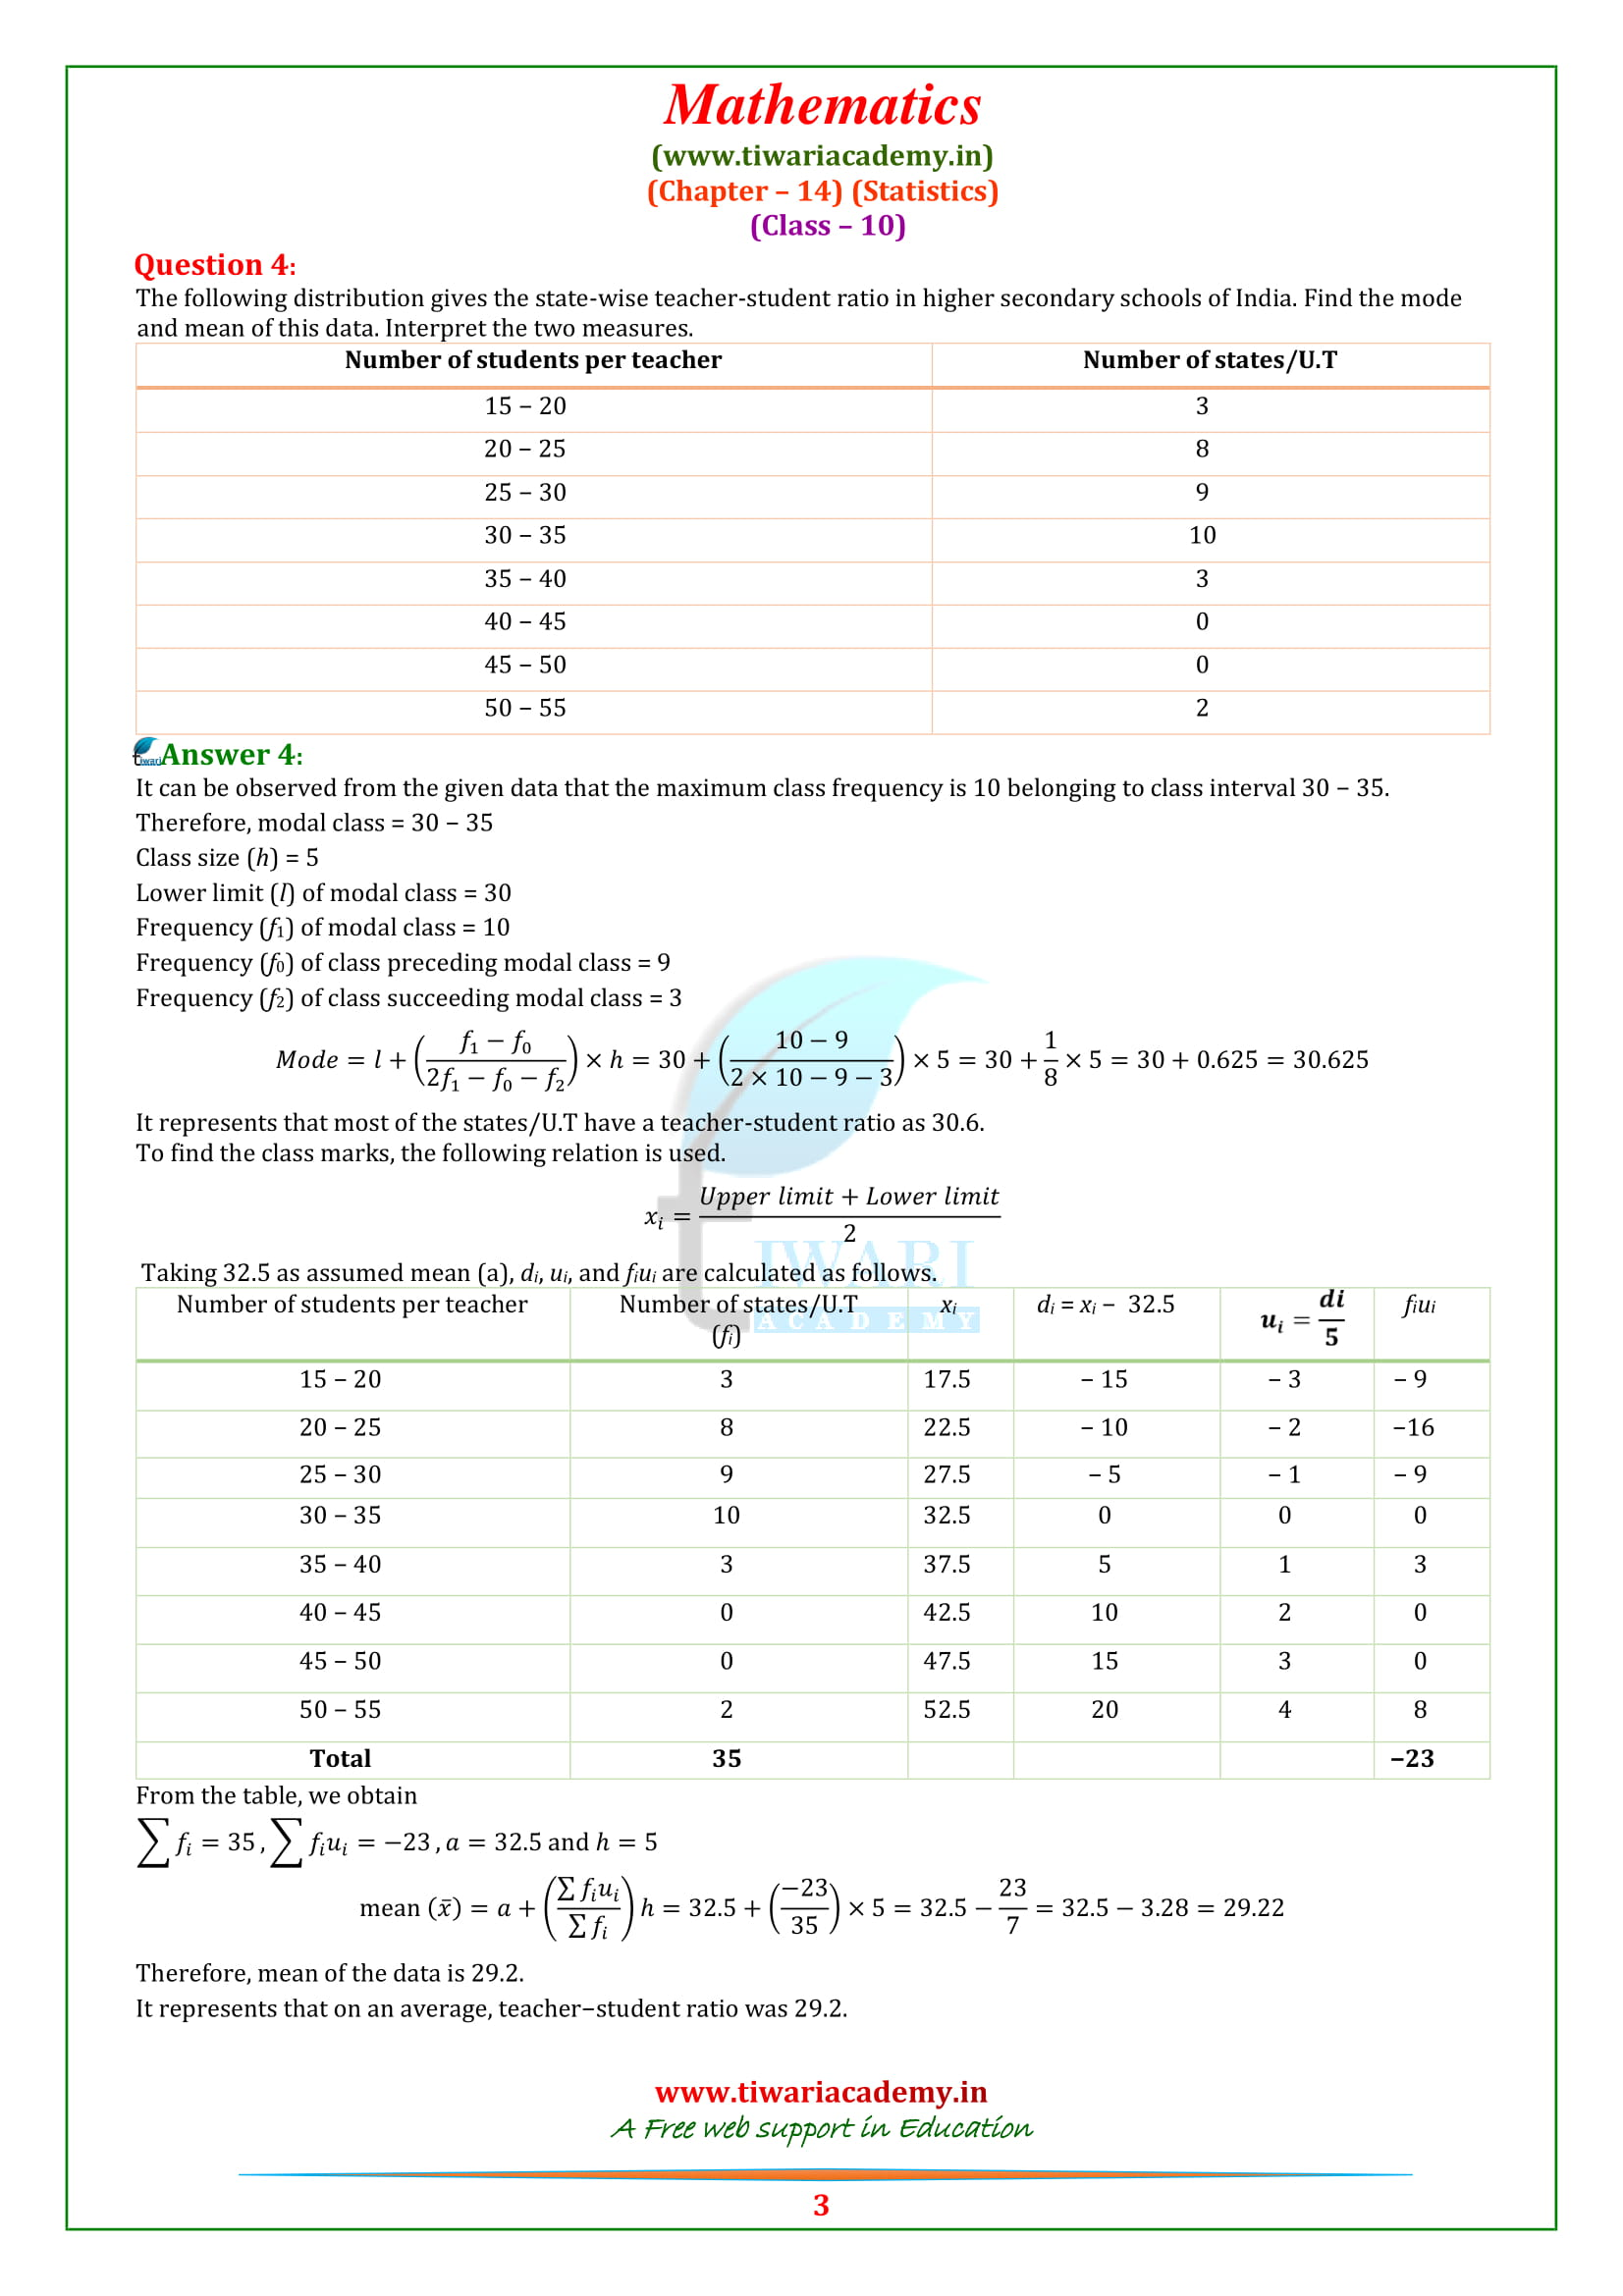 NCERT Solutions for Class 10 Maths Chapter 14 Exercise 14.2 Statistics updated 2018-19